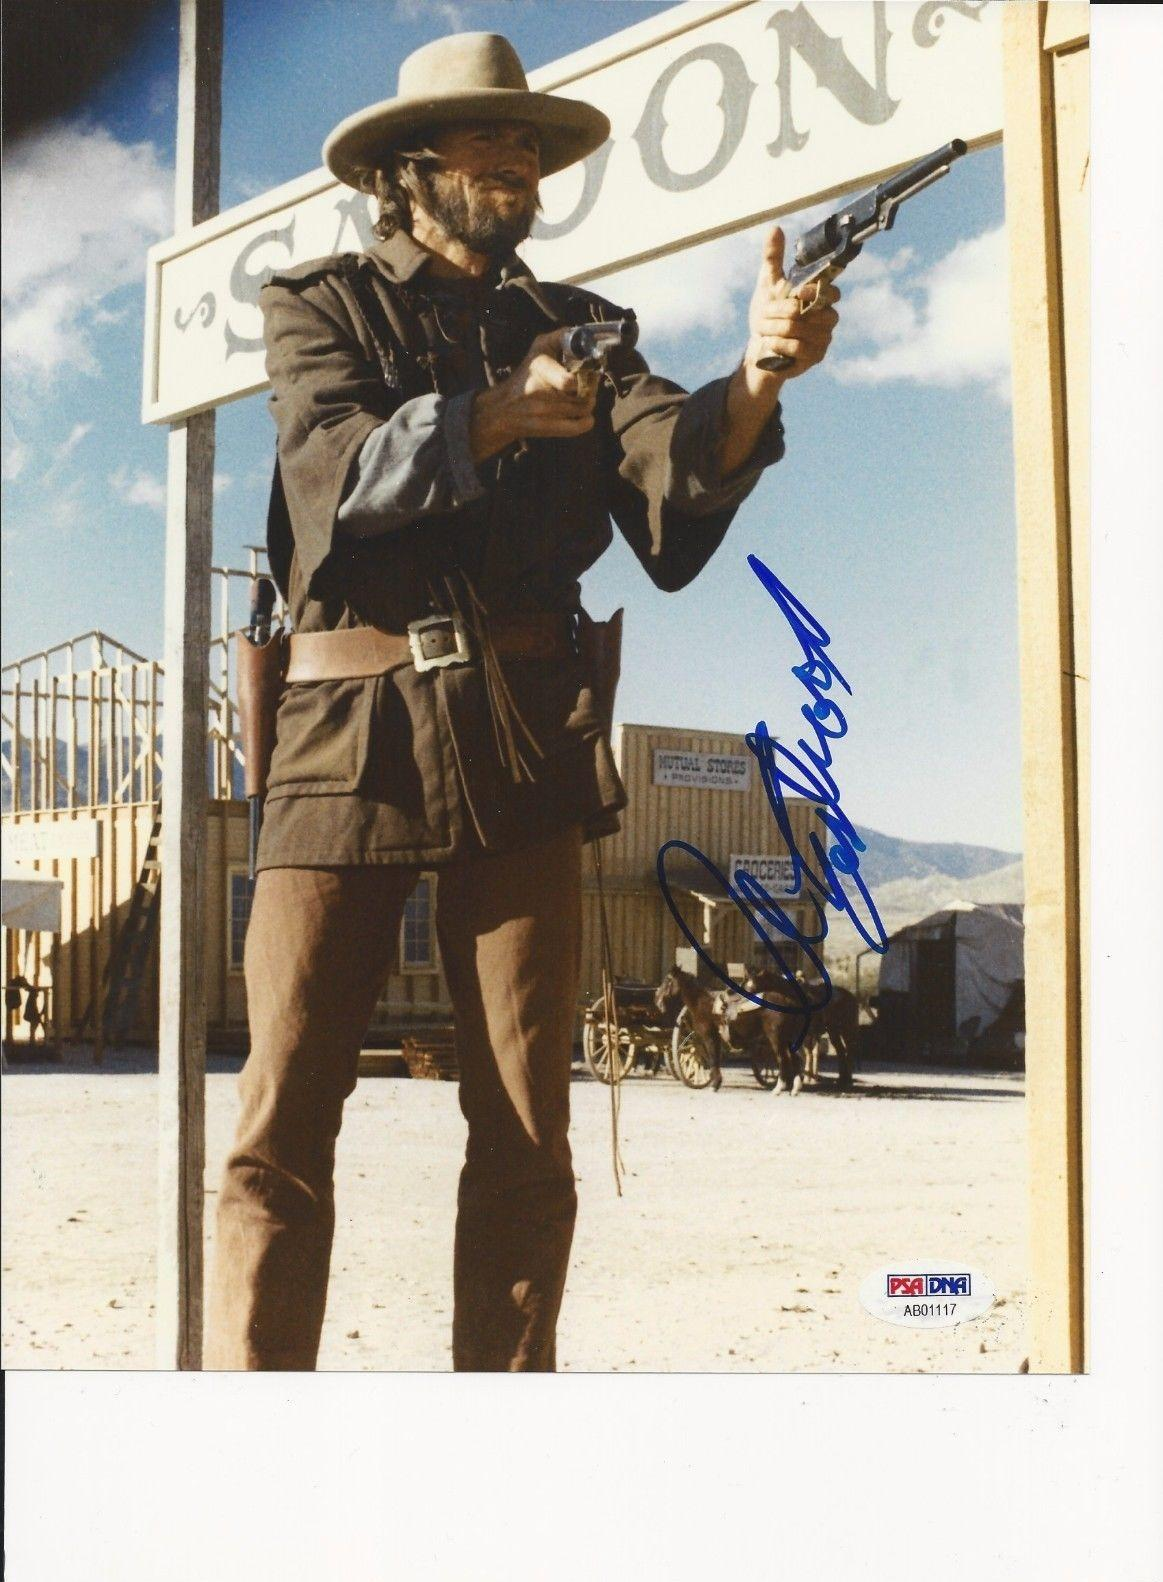 CLINT EASTWOOD Signed 8 x 10 PHOTO with PSA Letter of Authenticity